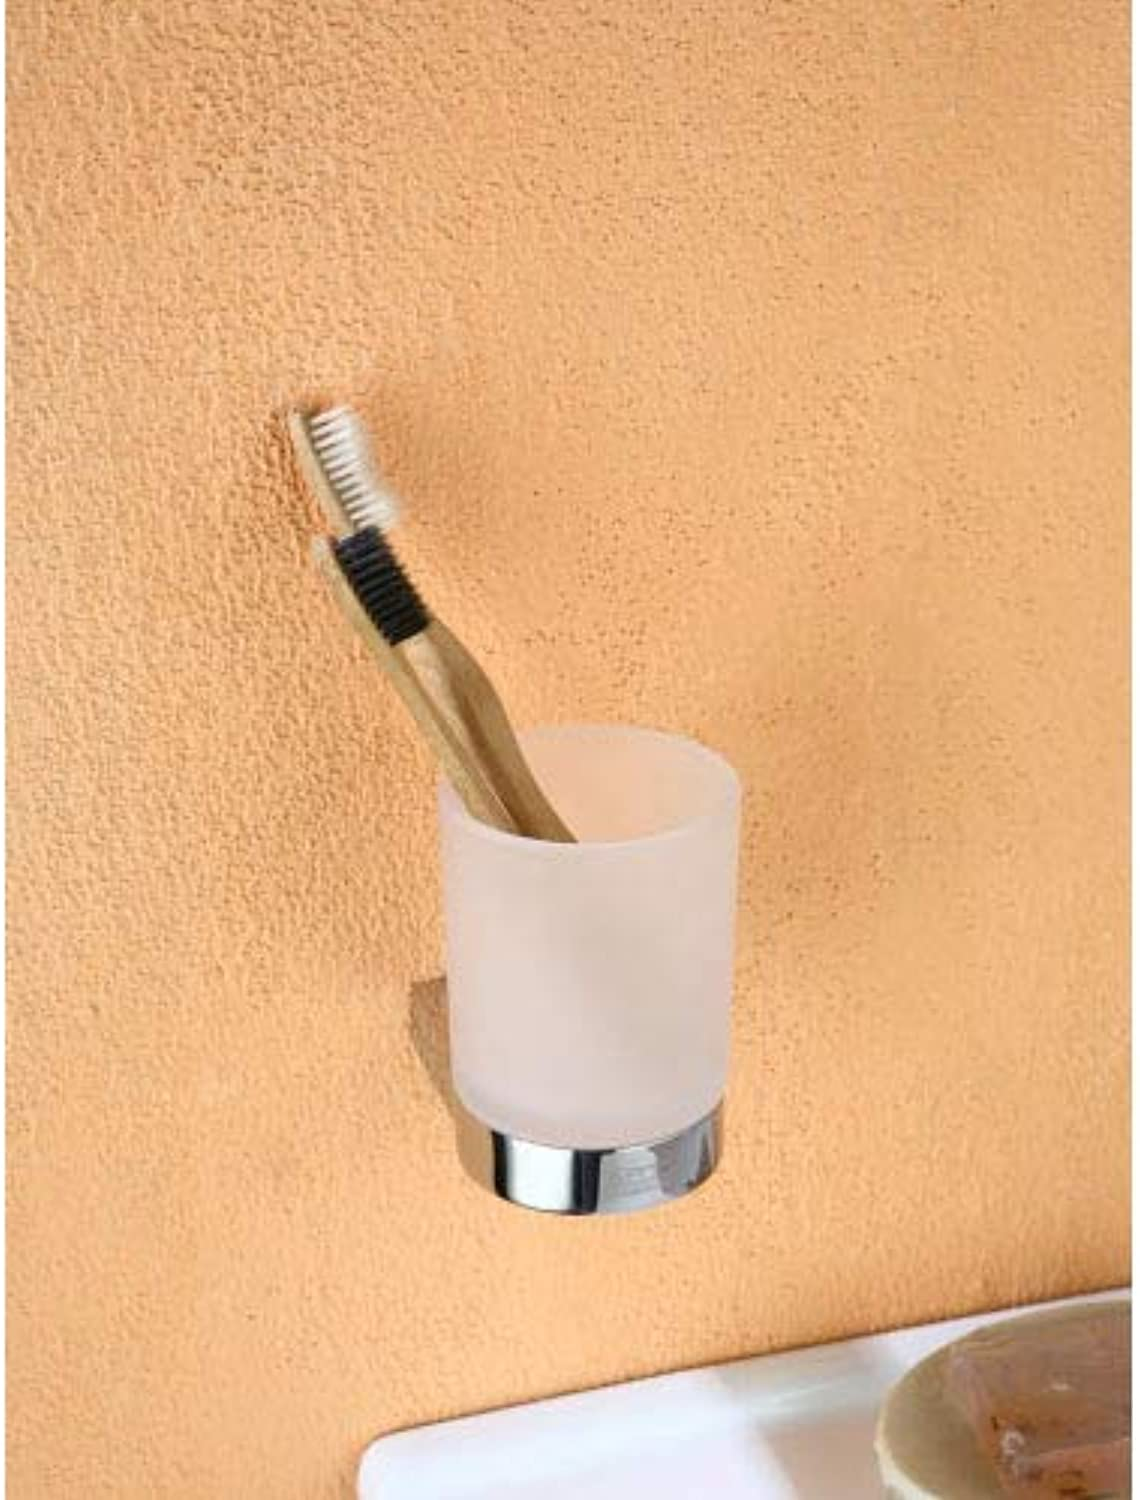 blueewater Chromed Handle with Glass for Bathrooms DOR-97050, Grey